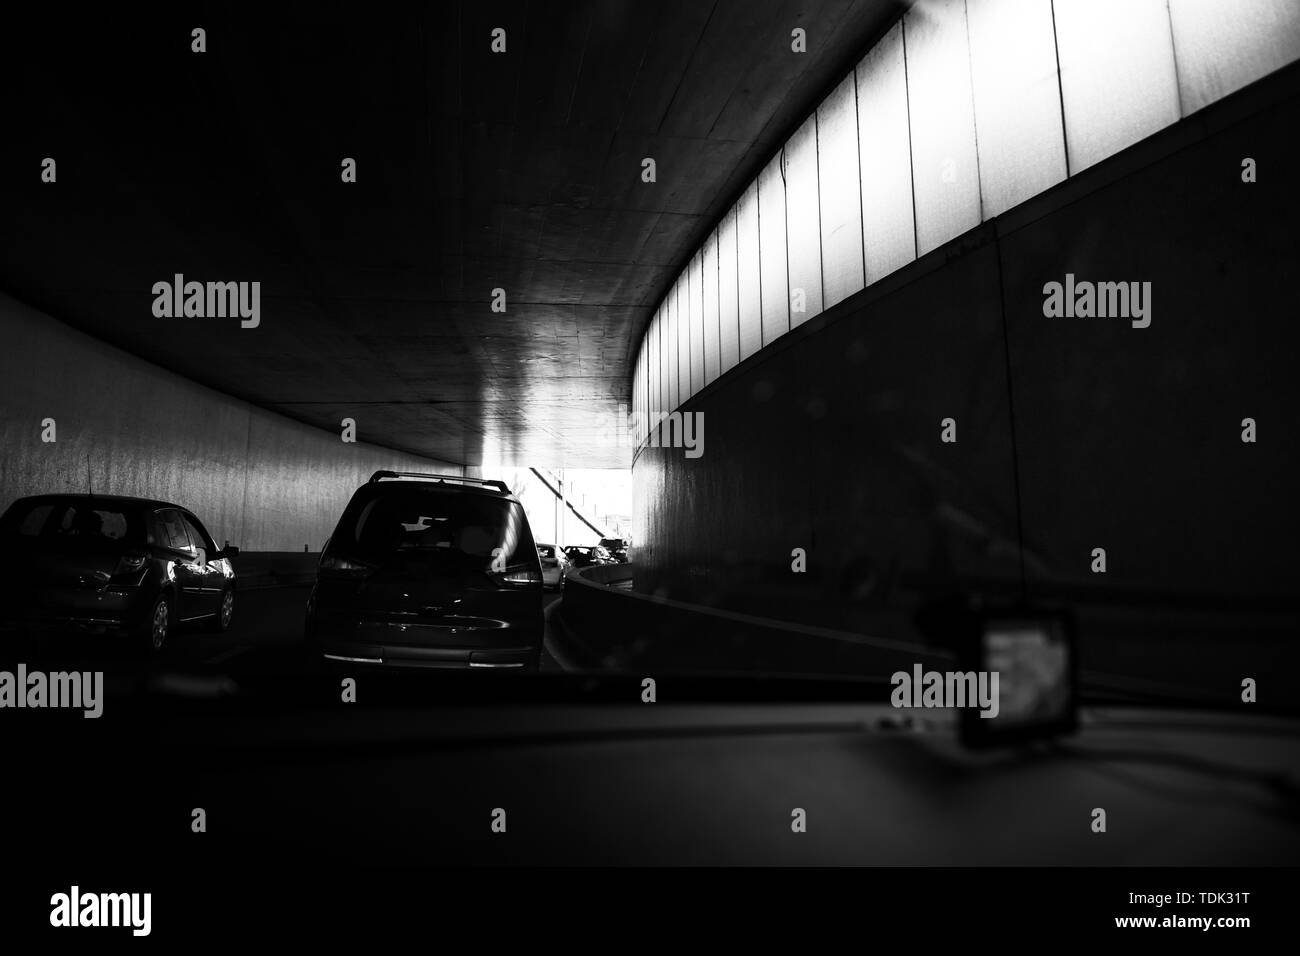 Driver POV point of view personal perspective at the traffic jam rush hour front driving cars inside the tunnels of Paris Peripherique ring road black and white. - Stock Image